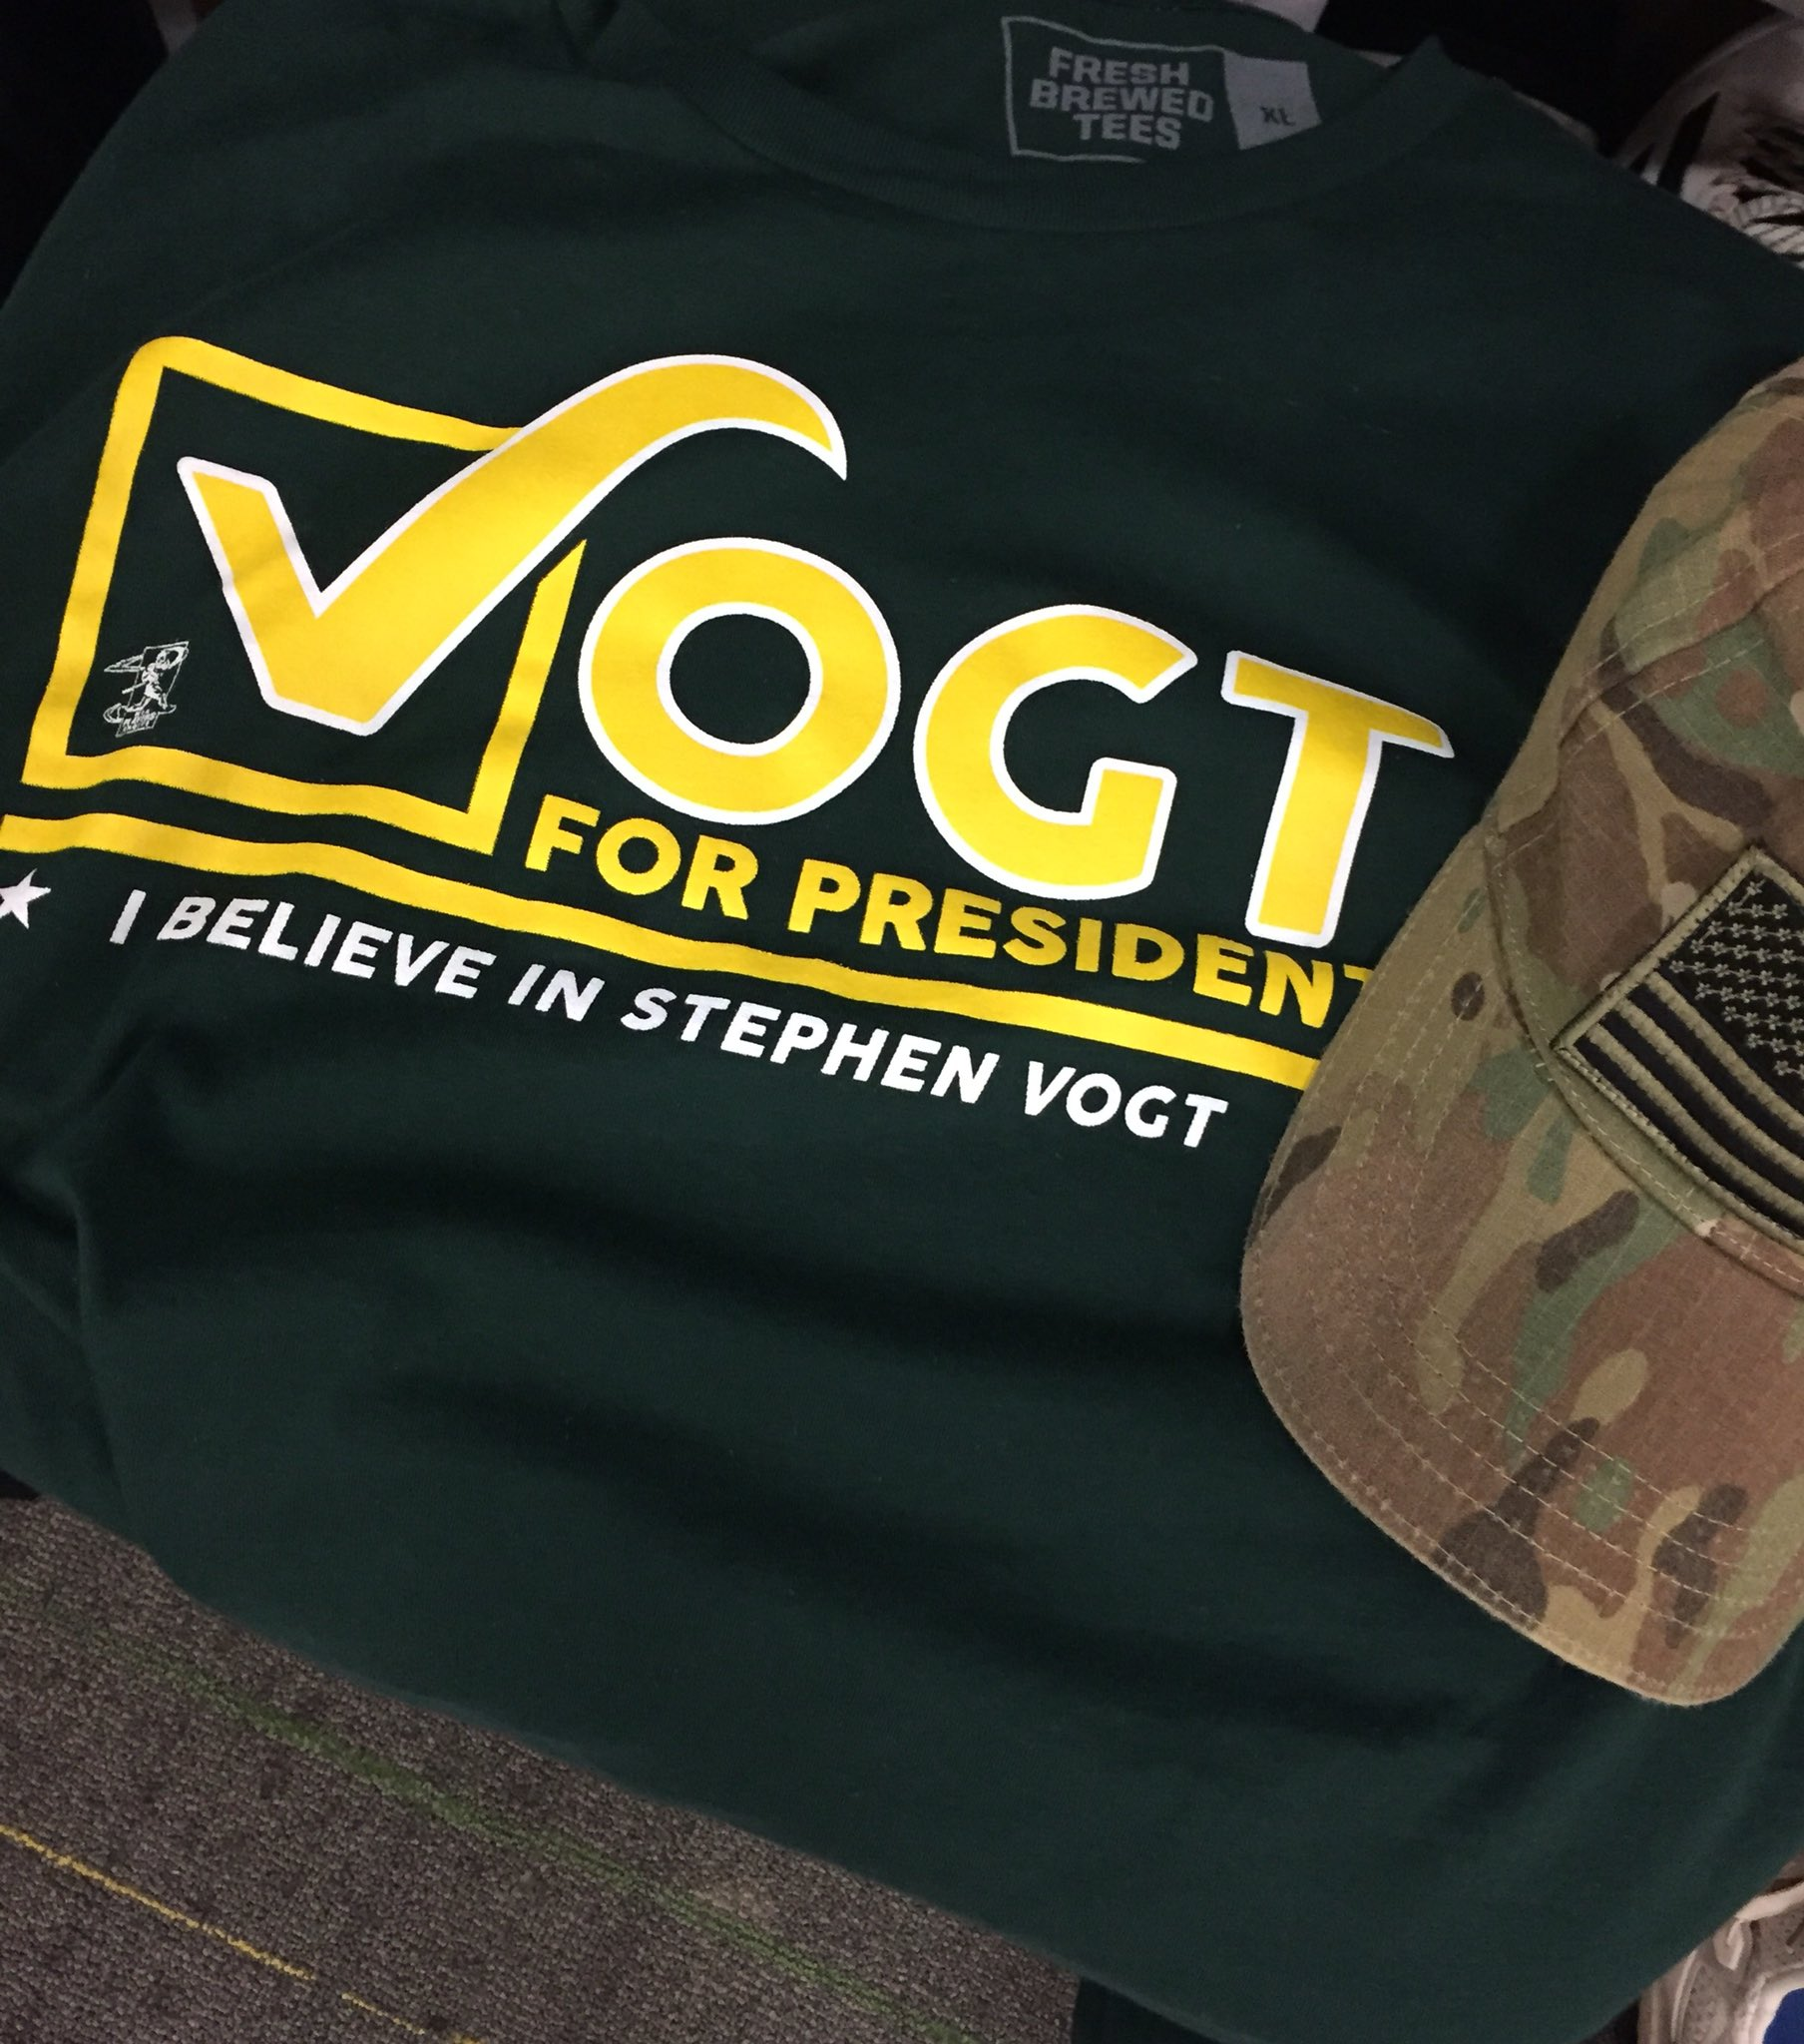 After careful consideration, I am proud to endorse Stephen Vogt for President! #Vote4Vogt #IBelieve #America ���� https://t.co/7bSSQdHalc